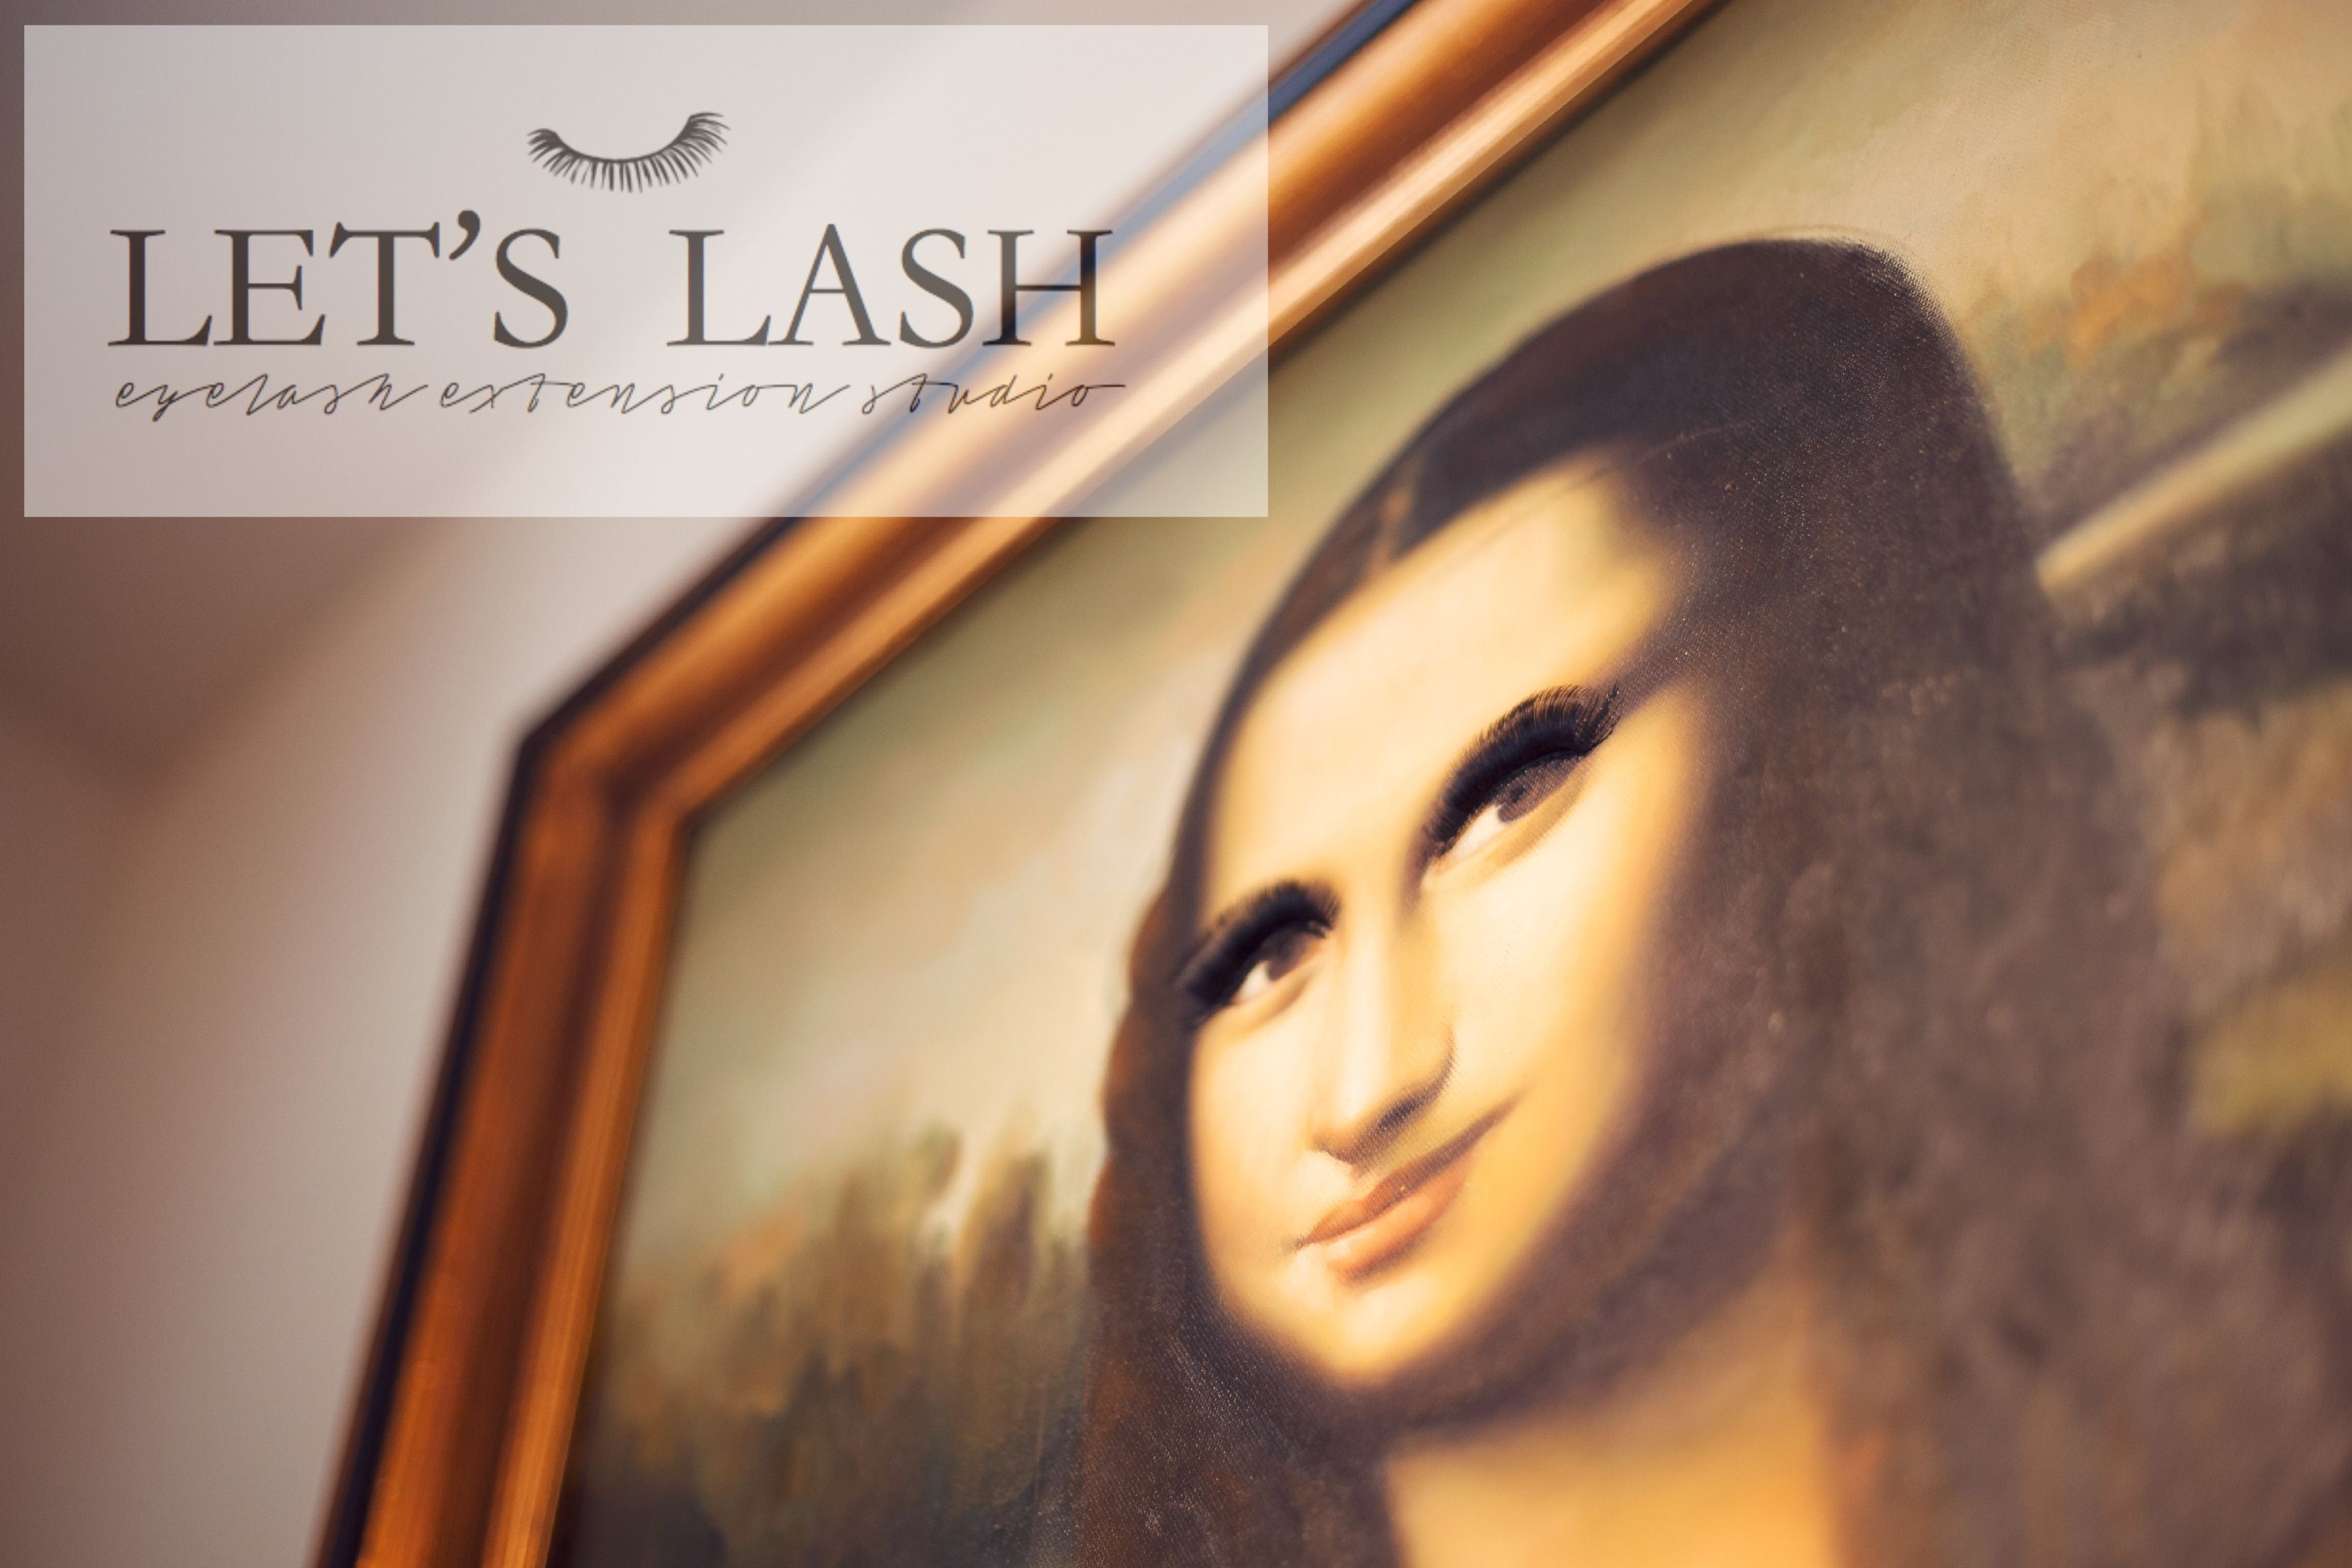 Even The Mona Lisa At Lets Lash Is Lashed Up Lets Lash Is A Super